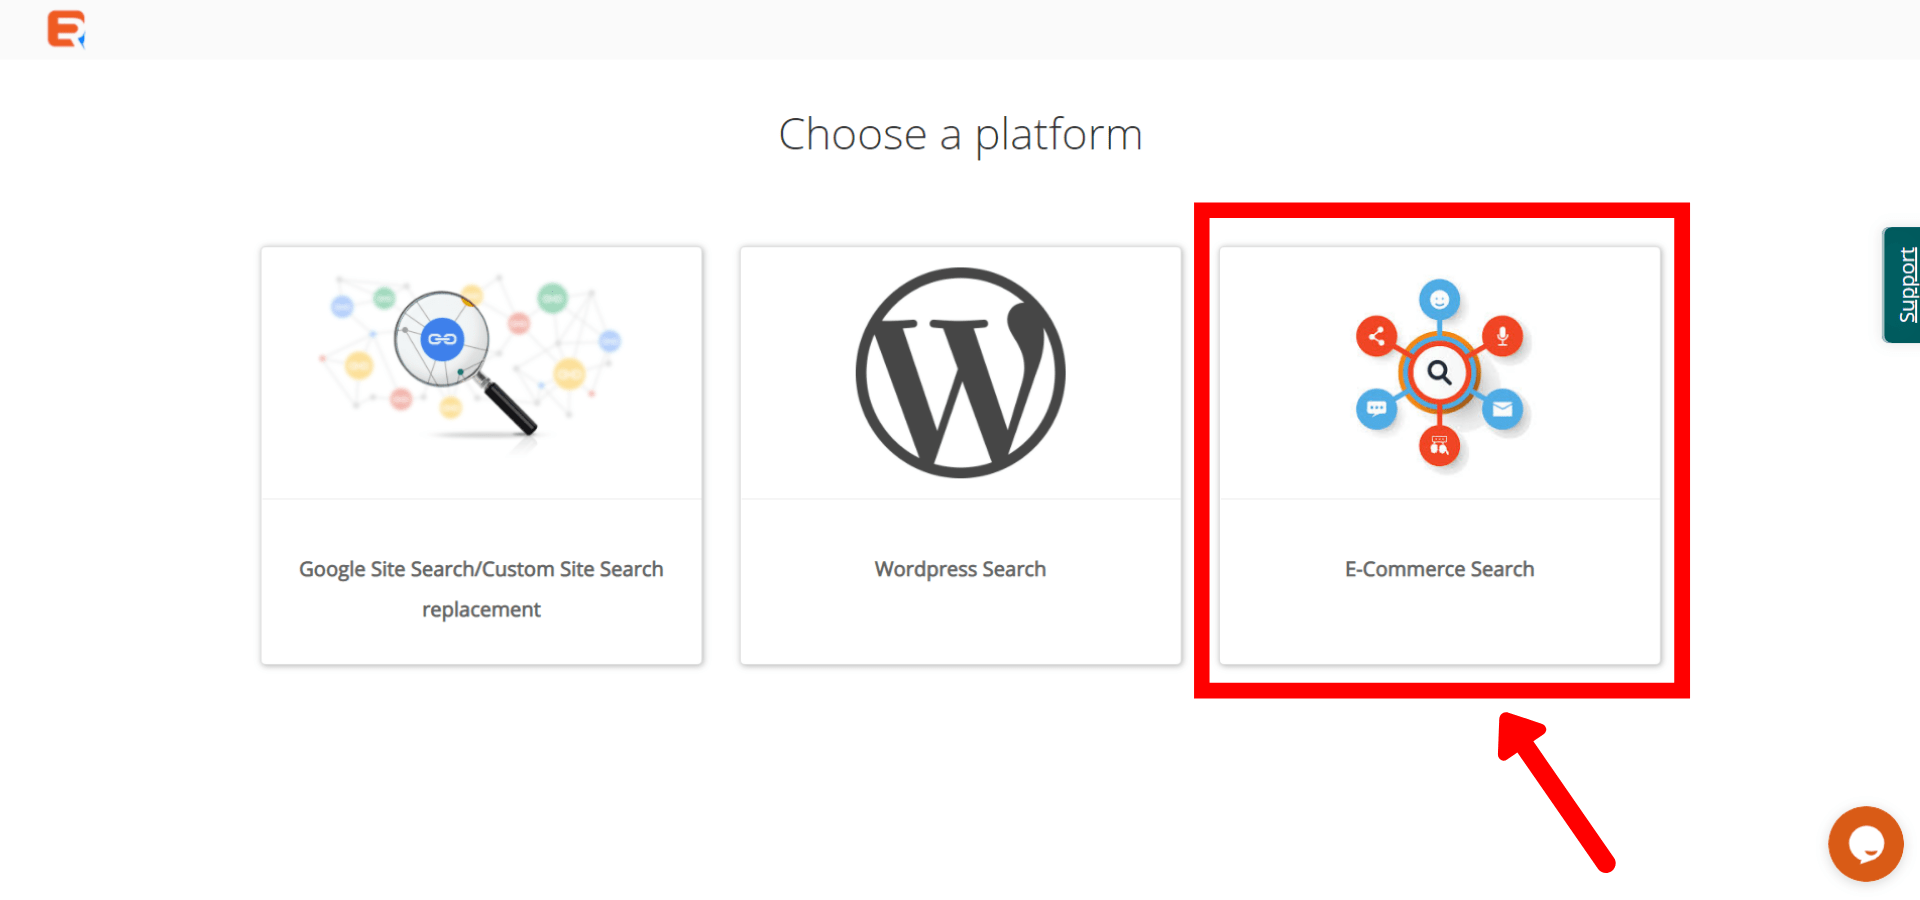 Choose E-Commerce Search to add Wix search bar in Wix store